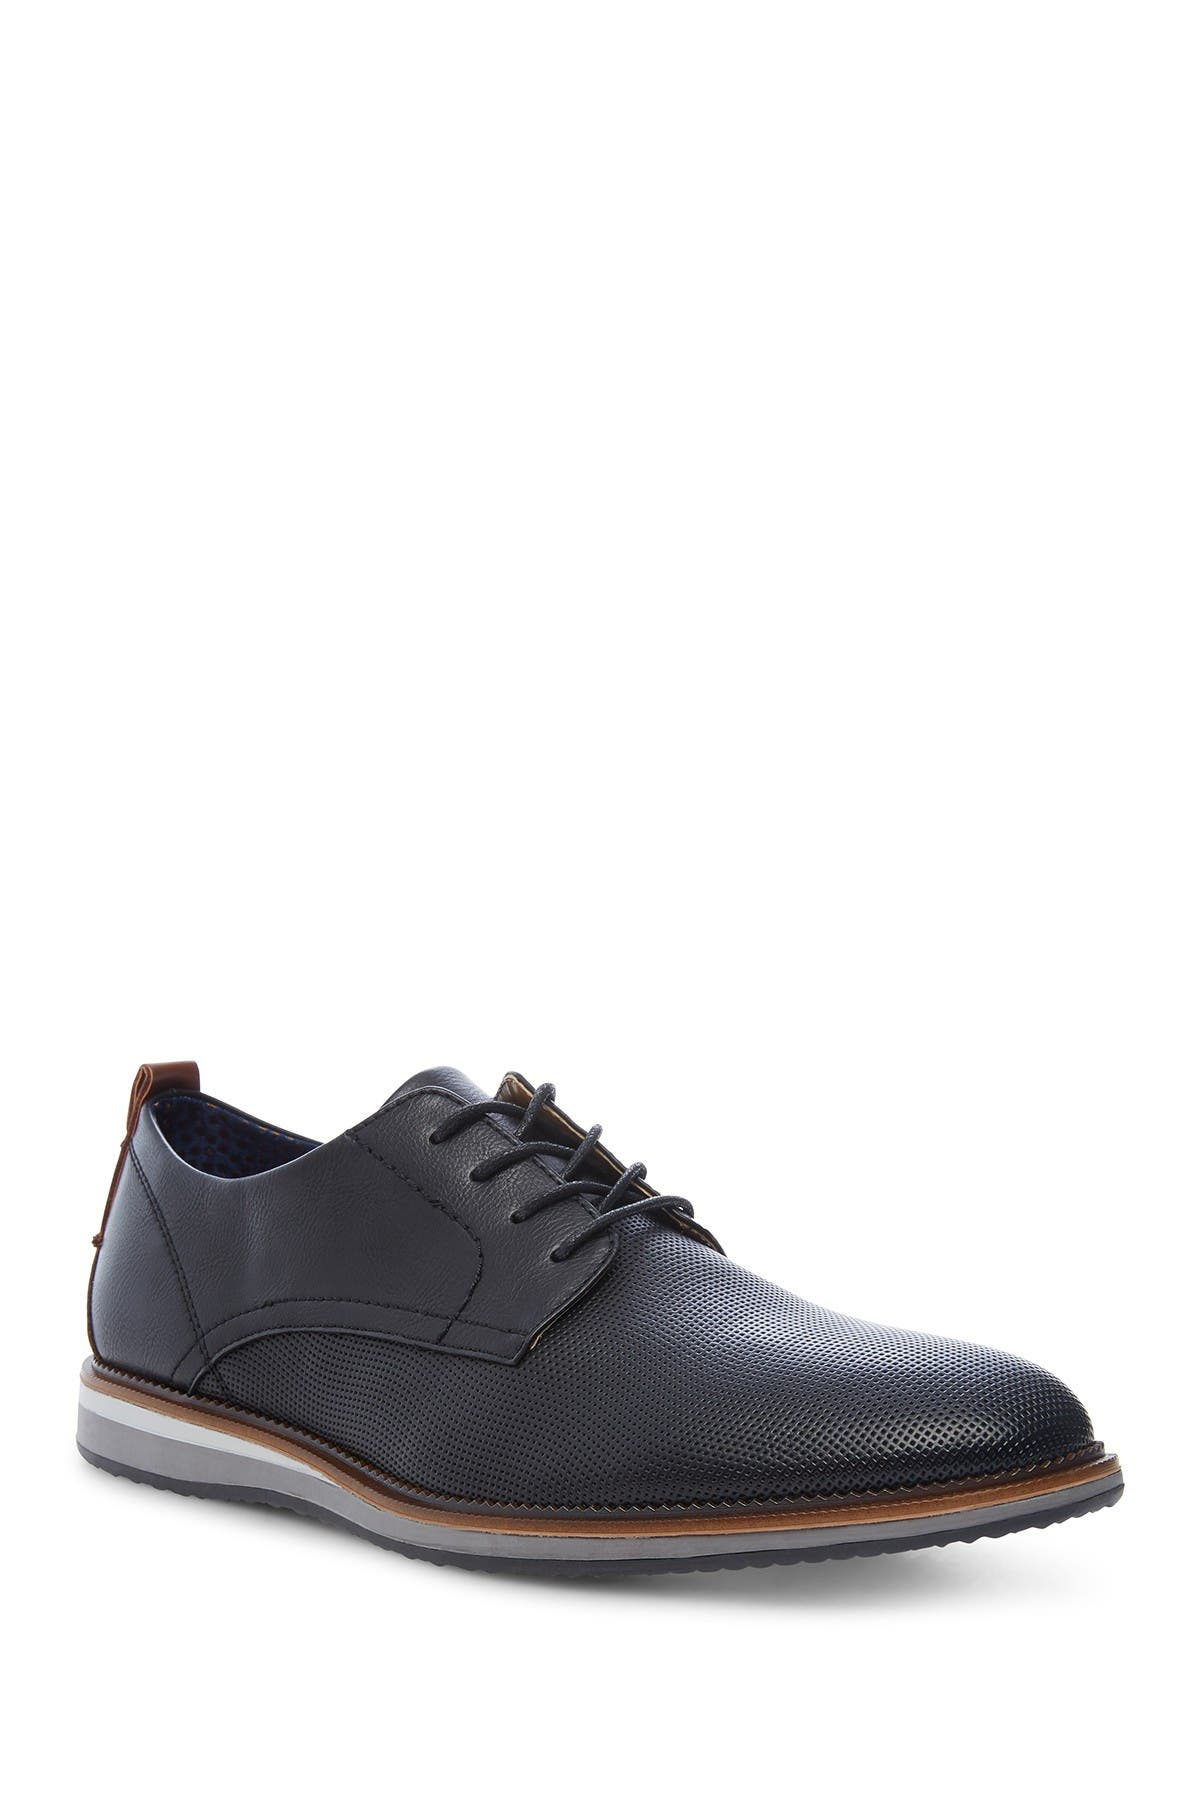 Image of Madden Hainnz Perforated Oxford